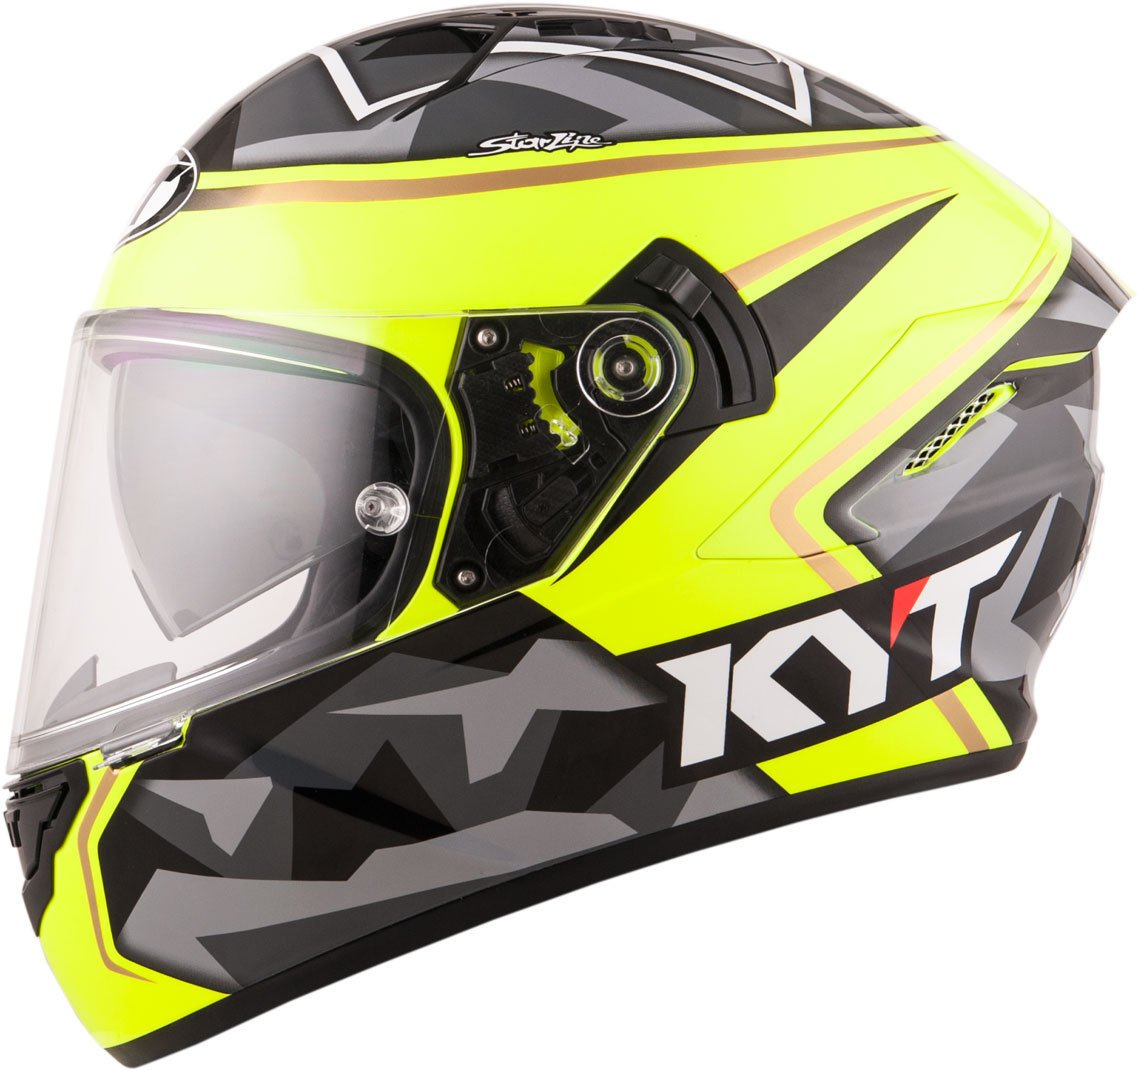 Amazon.es: KYT casco Moto Integral nf-r, Espargaro Replica 2017, talla XL 61 - 62 cm